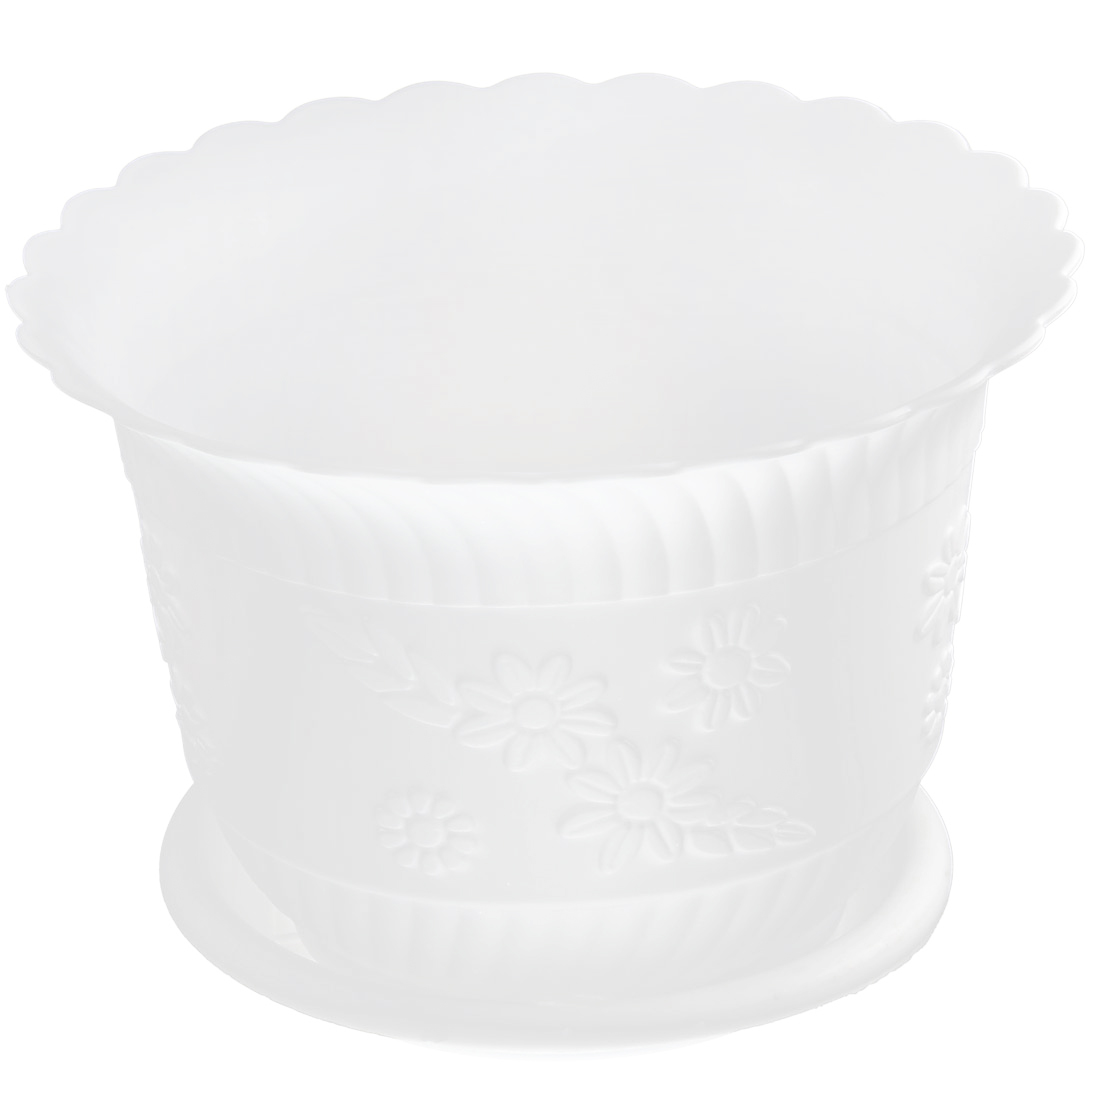 Home Office Garden Plastic Floral Pattern Plant Flower Pot White w Tray